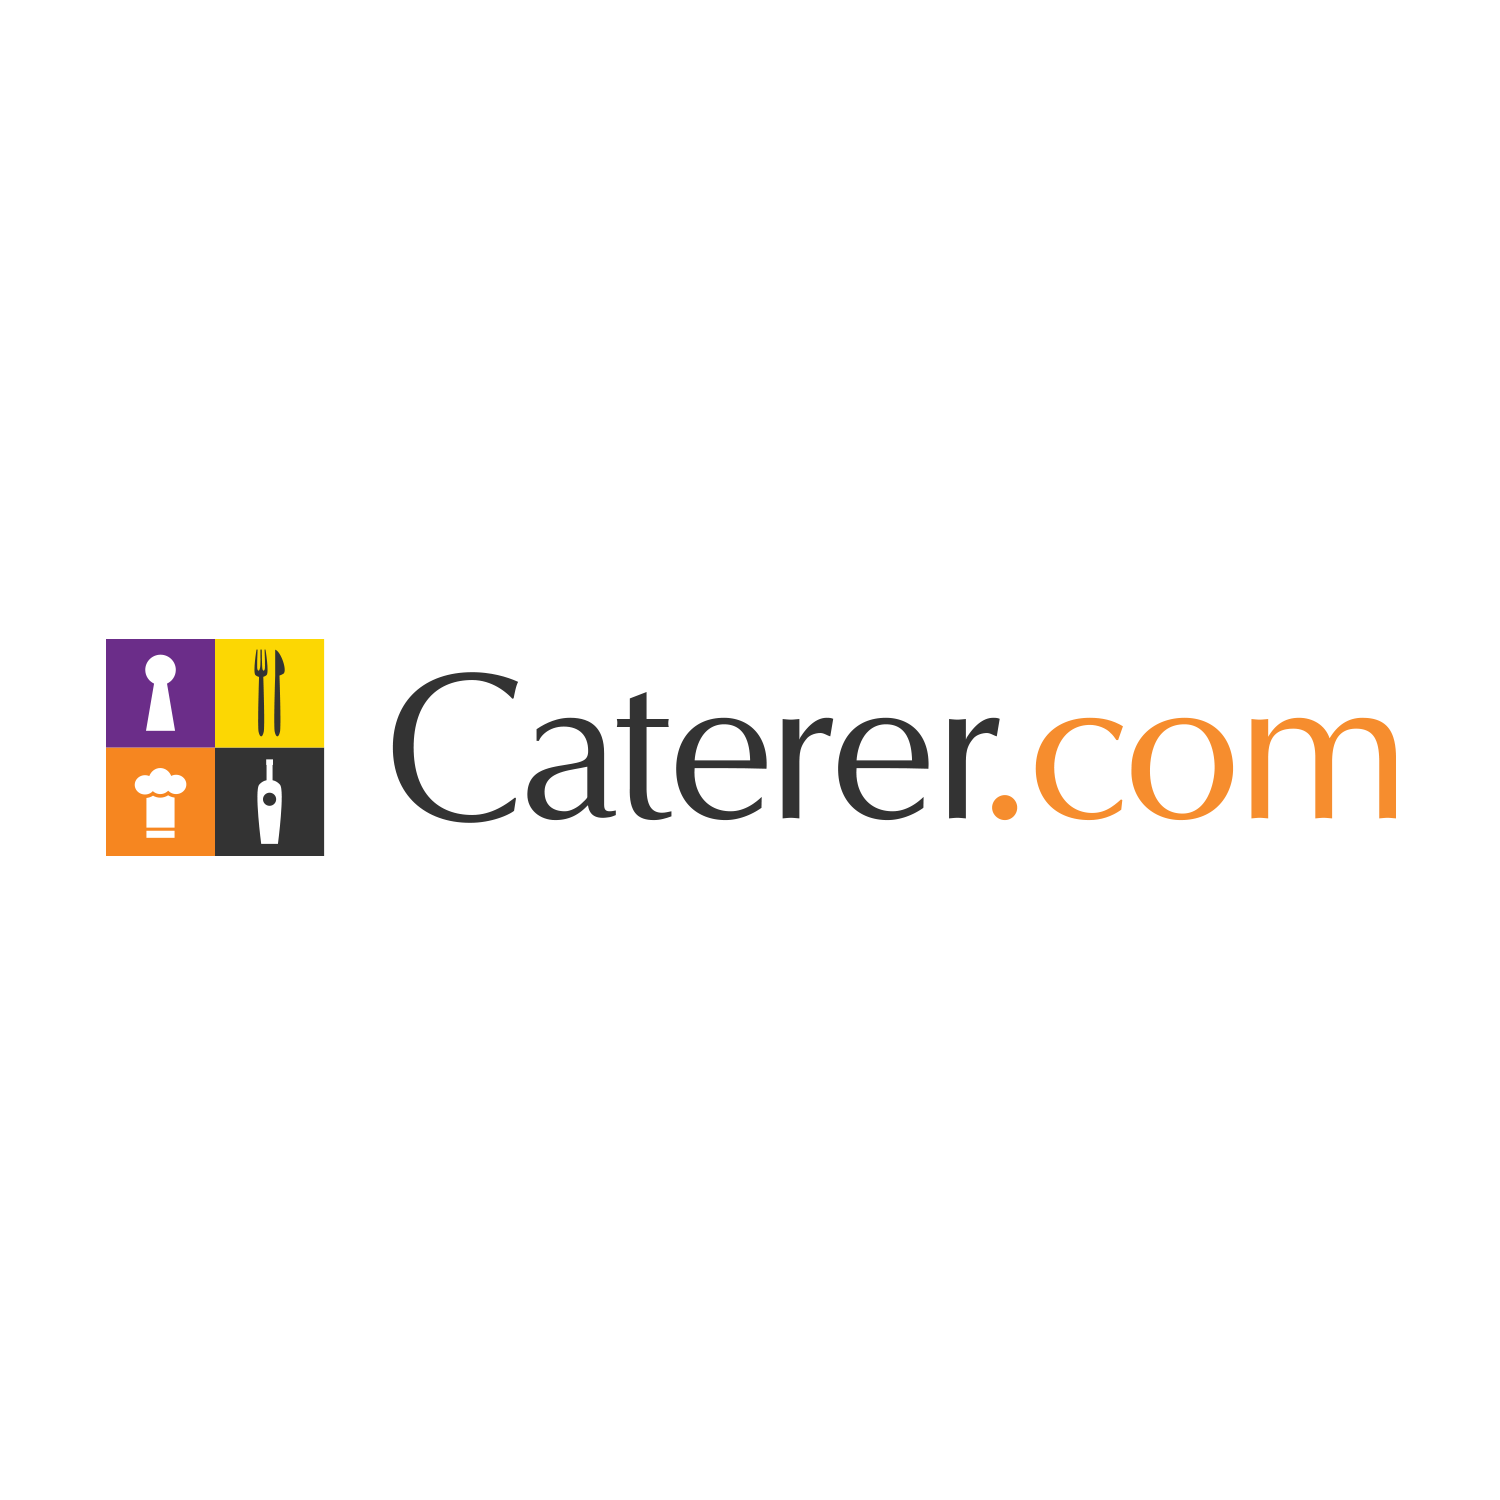 Catering Jobs, Vacancies & Careers - Caterer